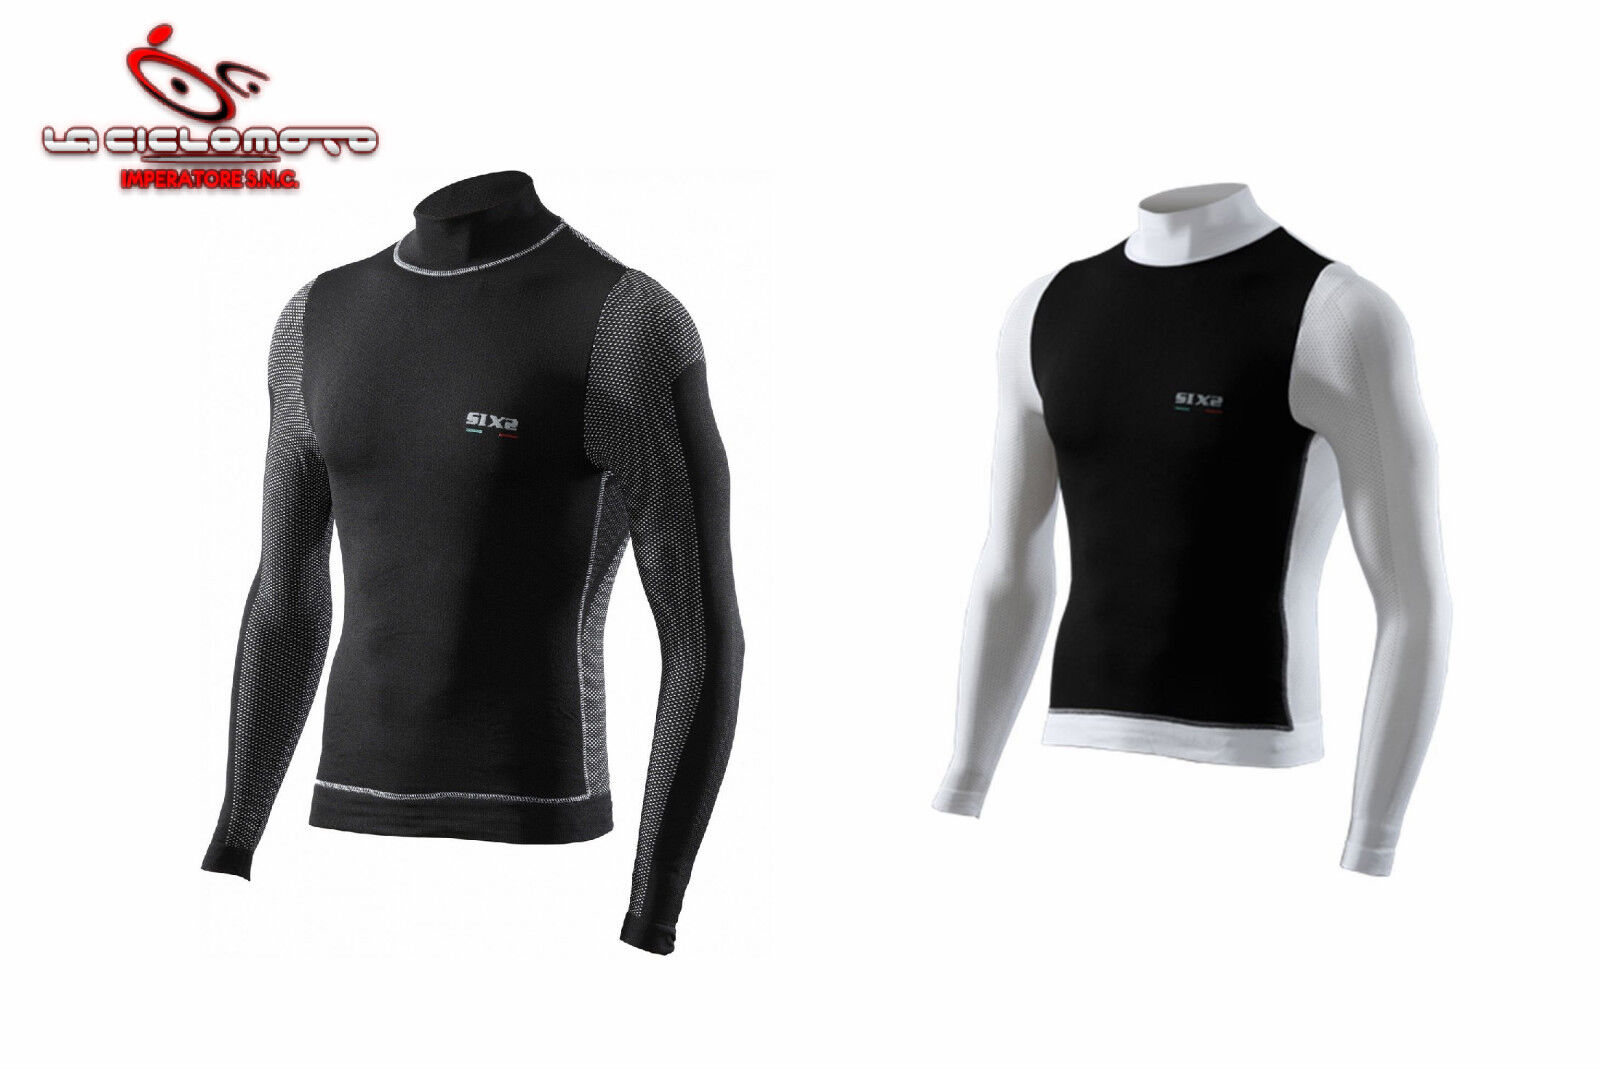 MAGLIA INTIMO hommes LUPETTO SIXS ANTIVENTO BICI MOTO SCI FonctionneHommest TS4 INVERNALE